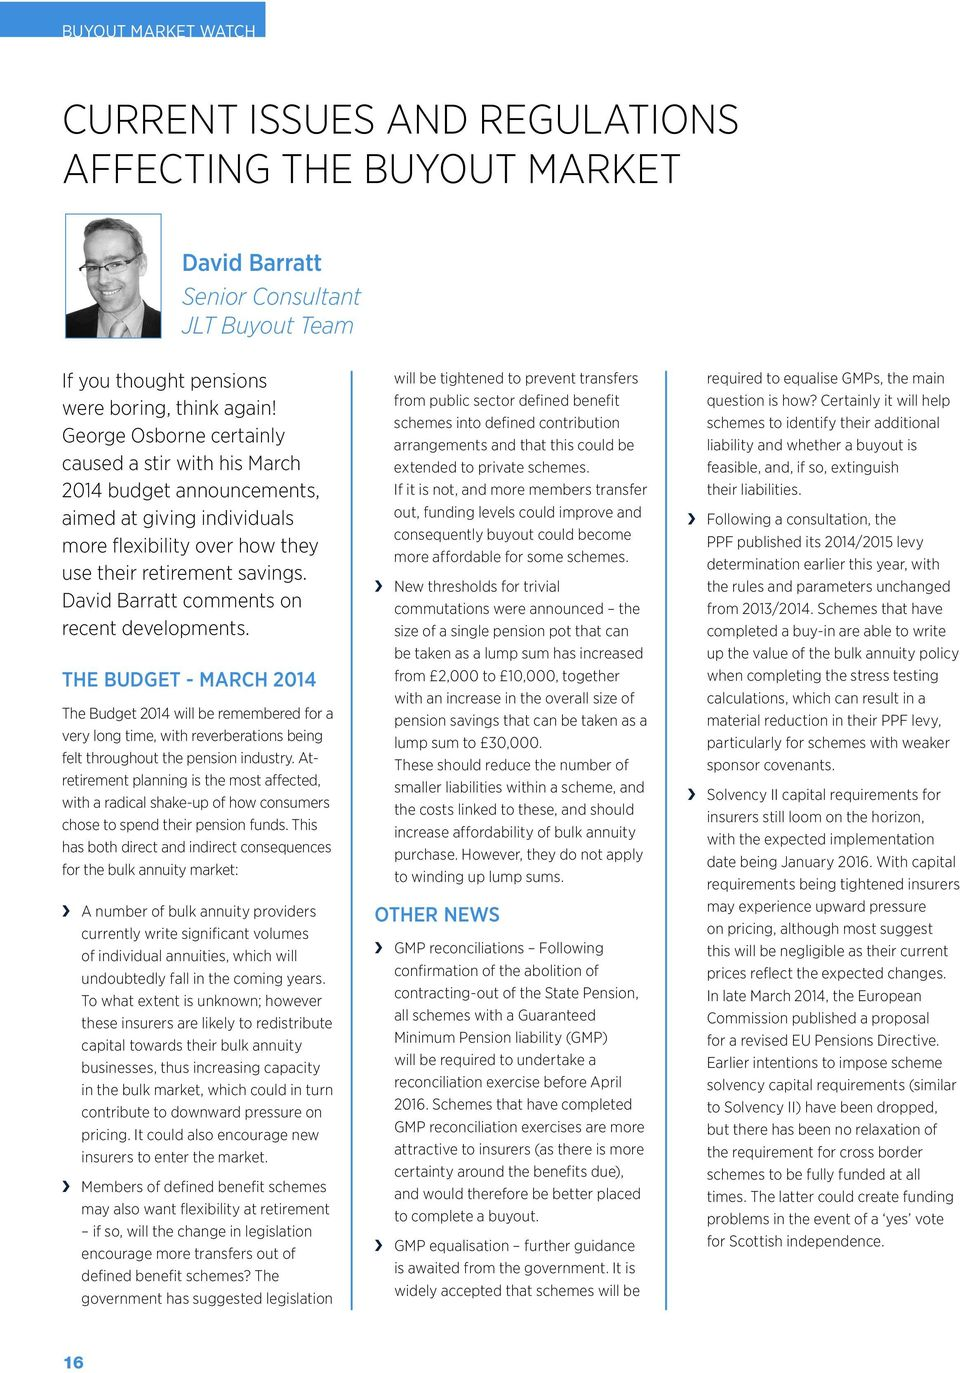 David Barratt comments on recent developments. THE BUDGET - MARCH 2014 The Budget 2014 will be remembered for a very long time, with reverberations being felt throughout the pension industry.